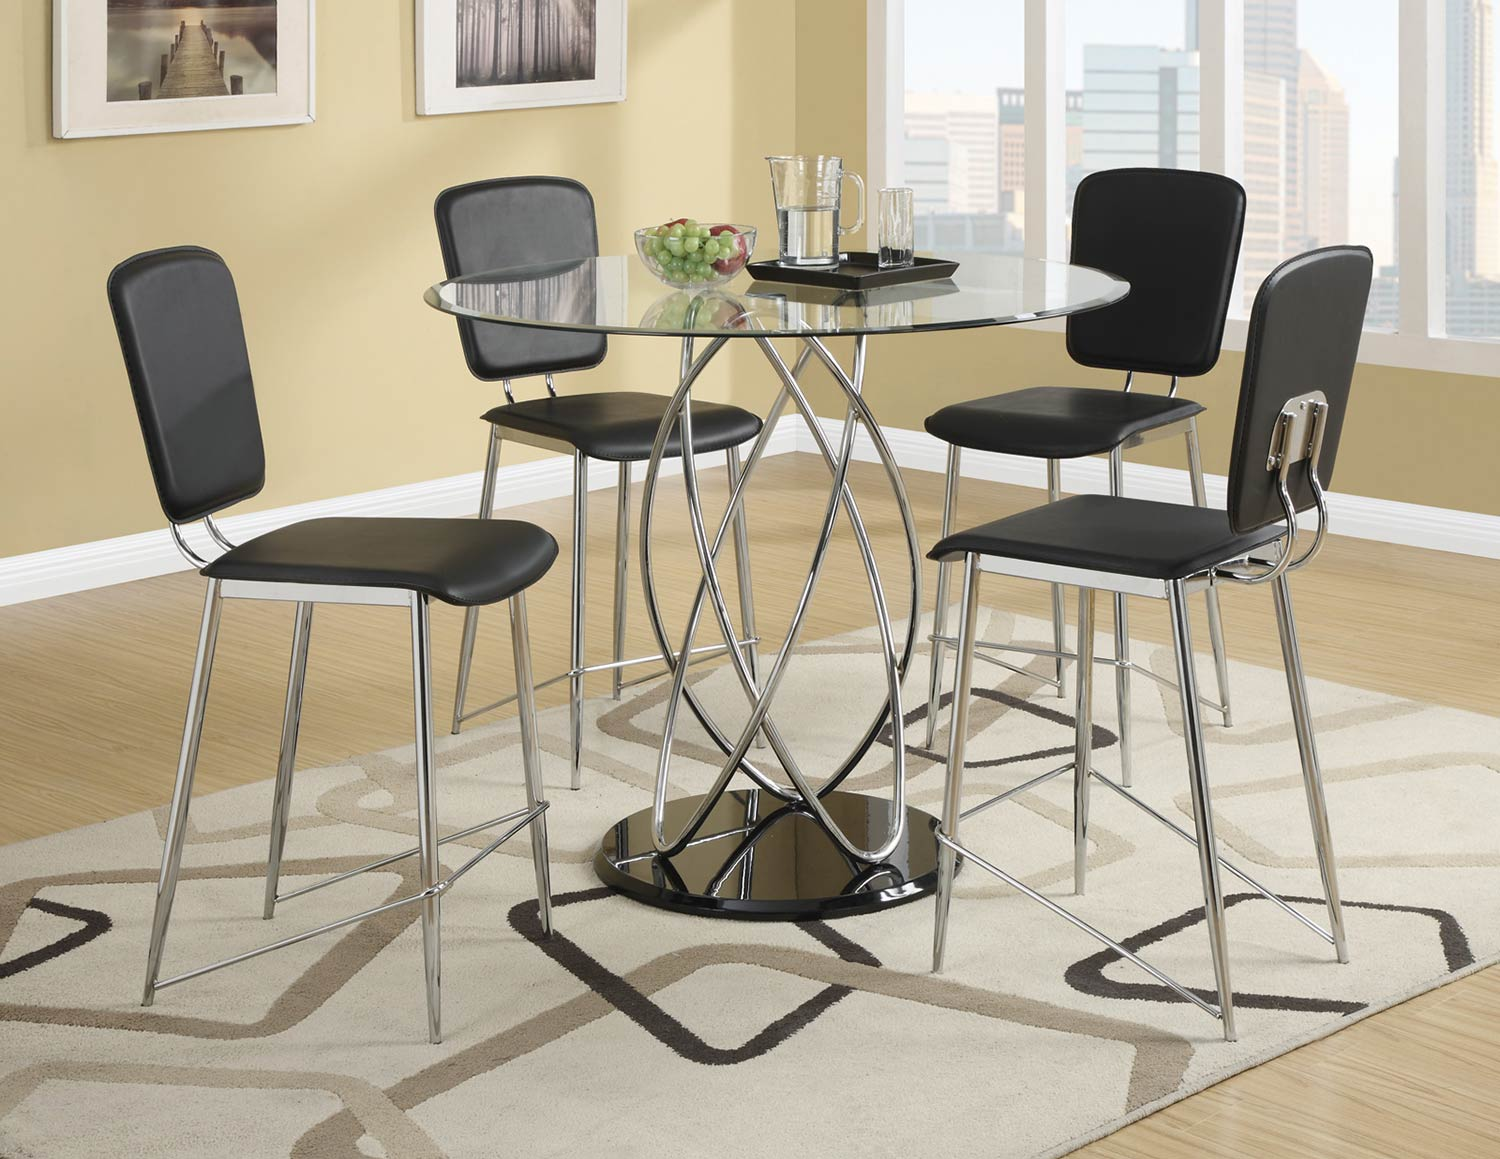 Coaster Ciccone Counter Height Dining Set - Chrome/Glossy Black